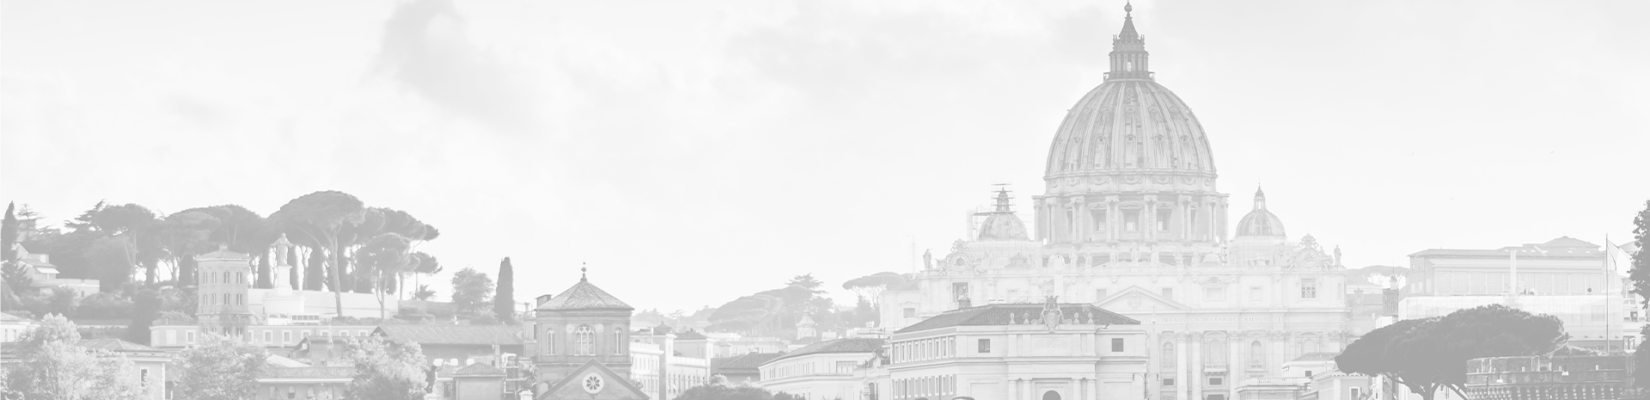 Transparent-Gray Background of City in Italy